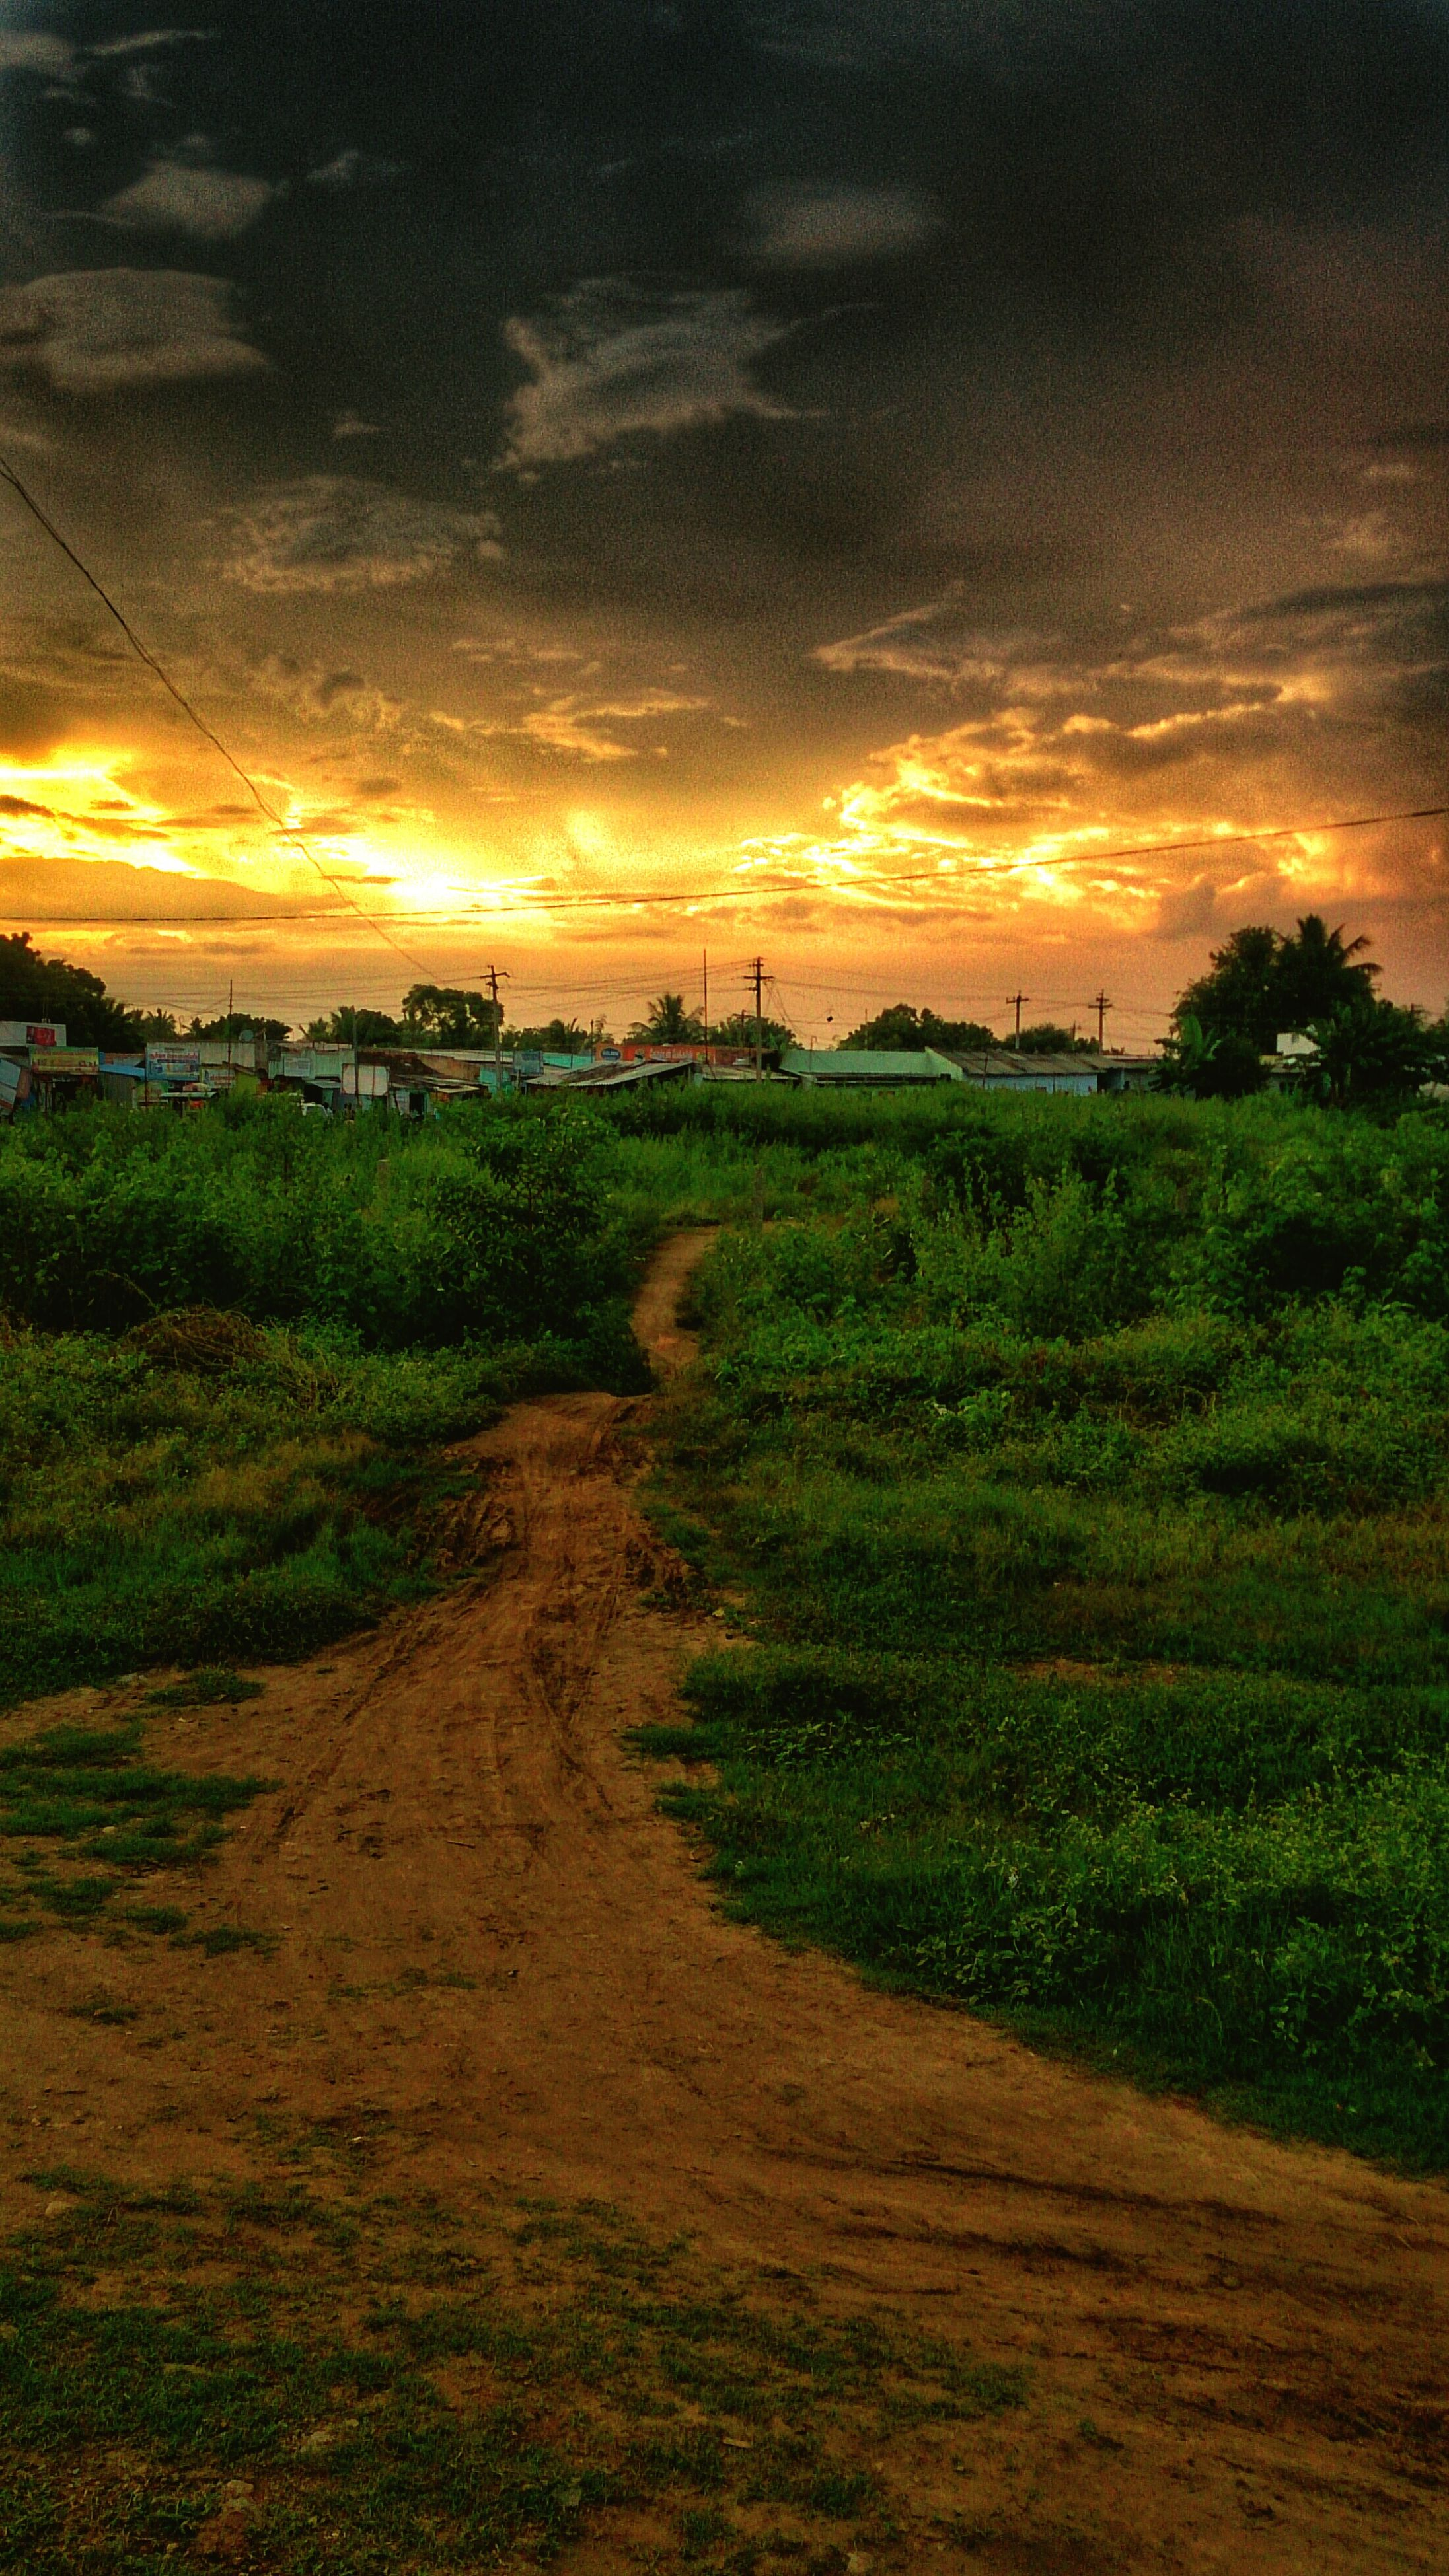 sunset, sky, tranquil scene, landscape, scenics, field, tranquility, beauty in nature, cloud - sky, orange color, nature, grass, idyllic, rural scene, tree, growth, dramatic sky, agriculture, cloudy, cloud